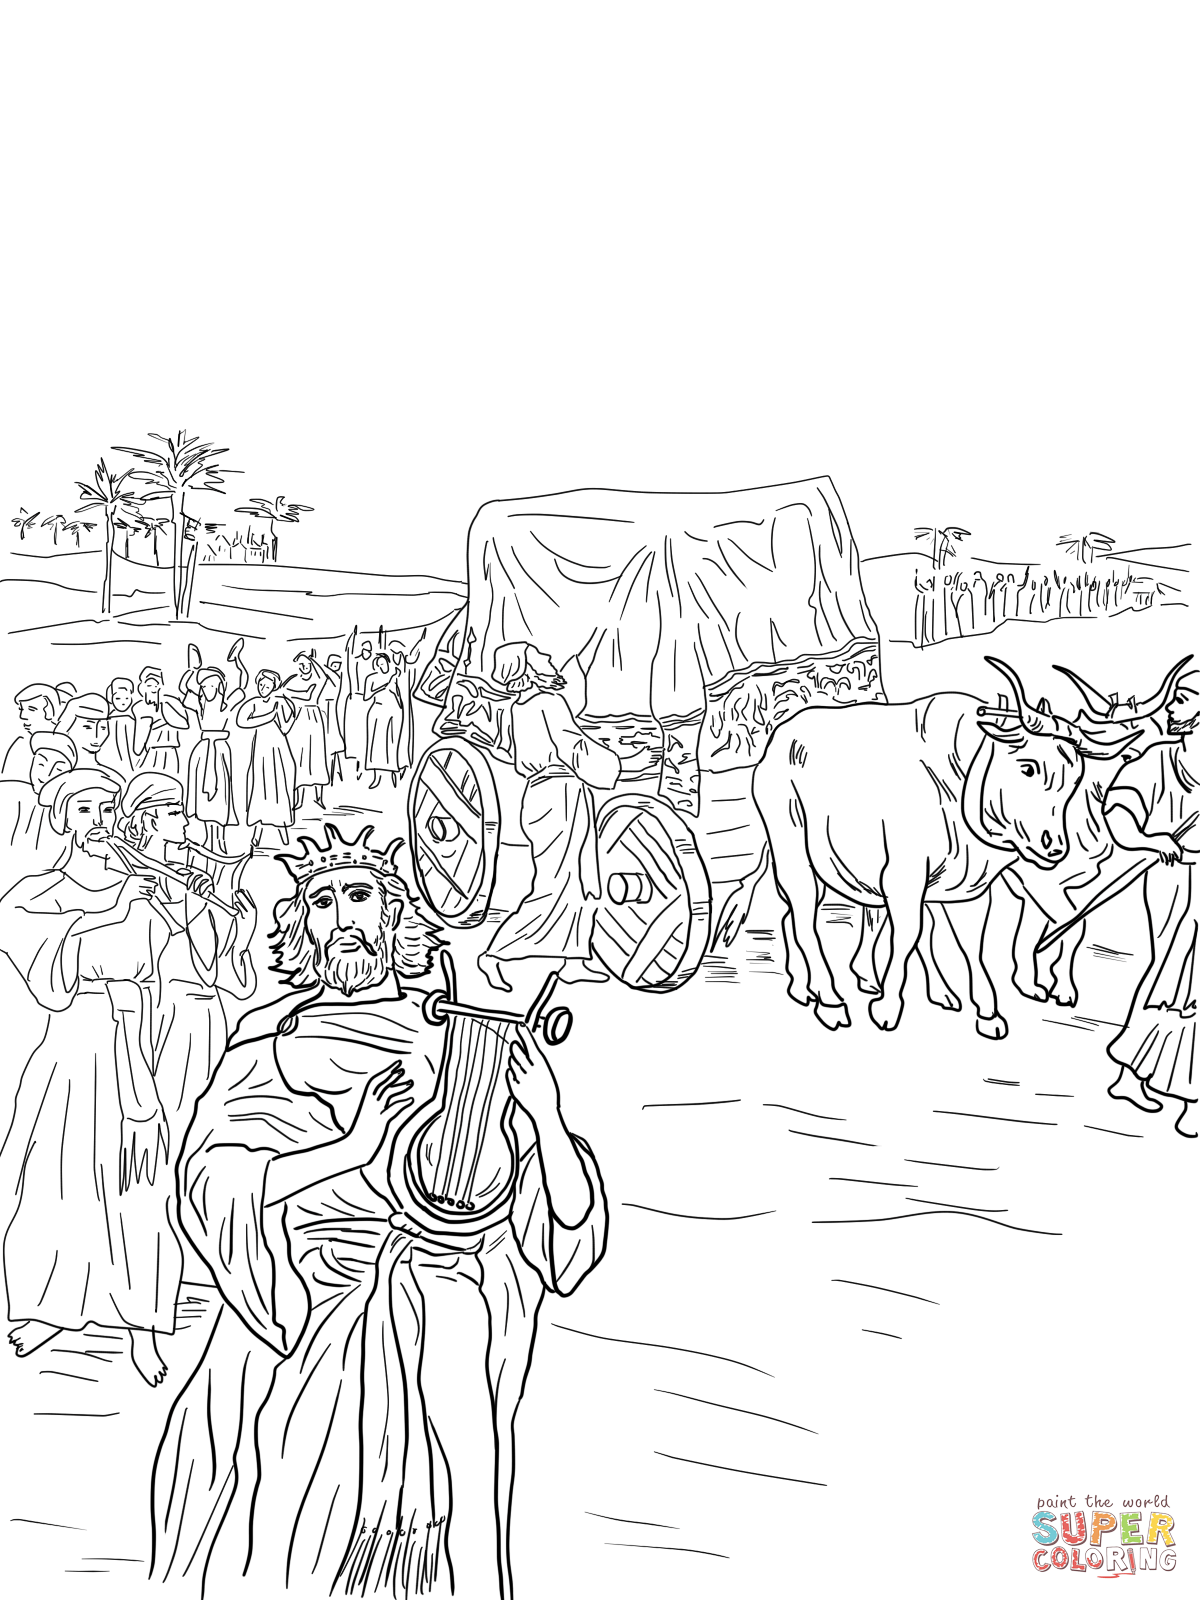 ark of the covenant coloring page the priests came up out of the river carrying the ark of the covenant page coloring ark of